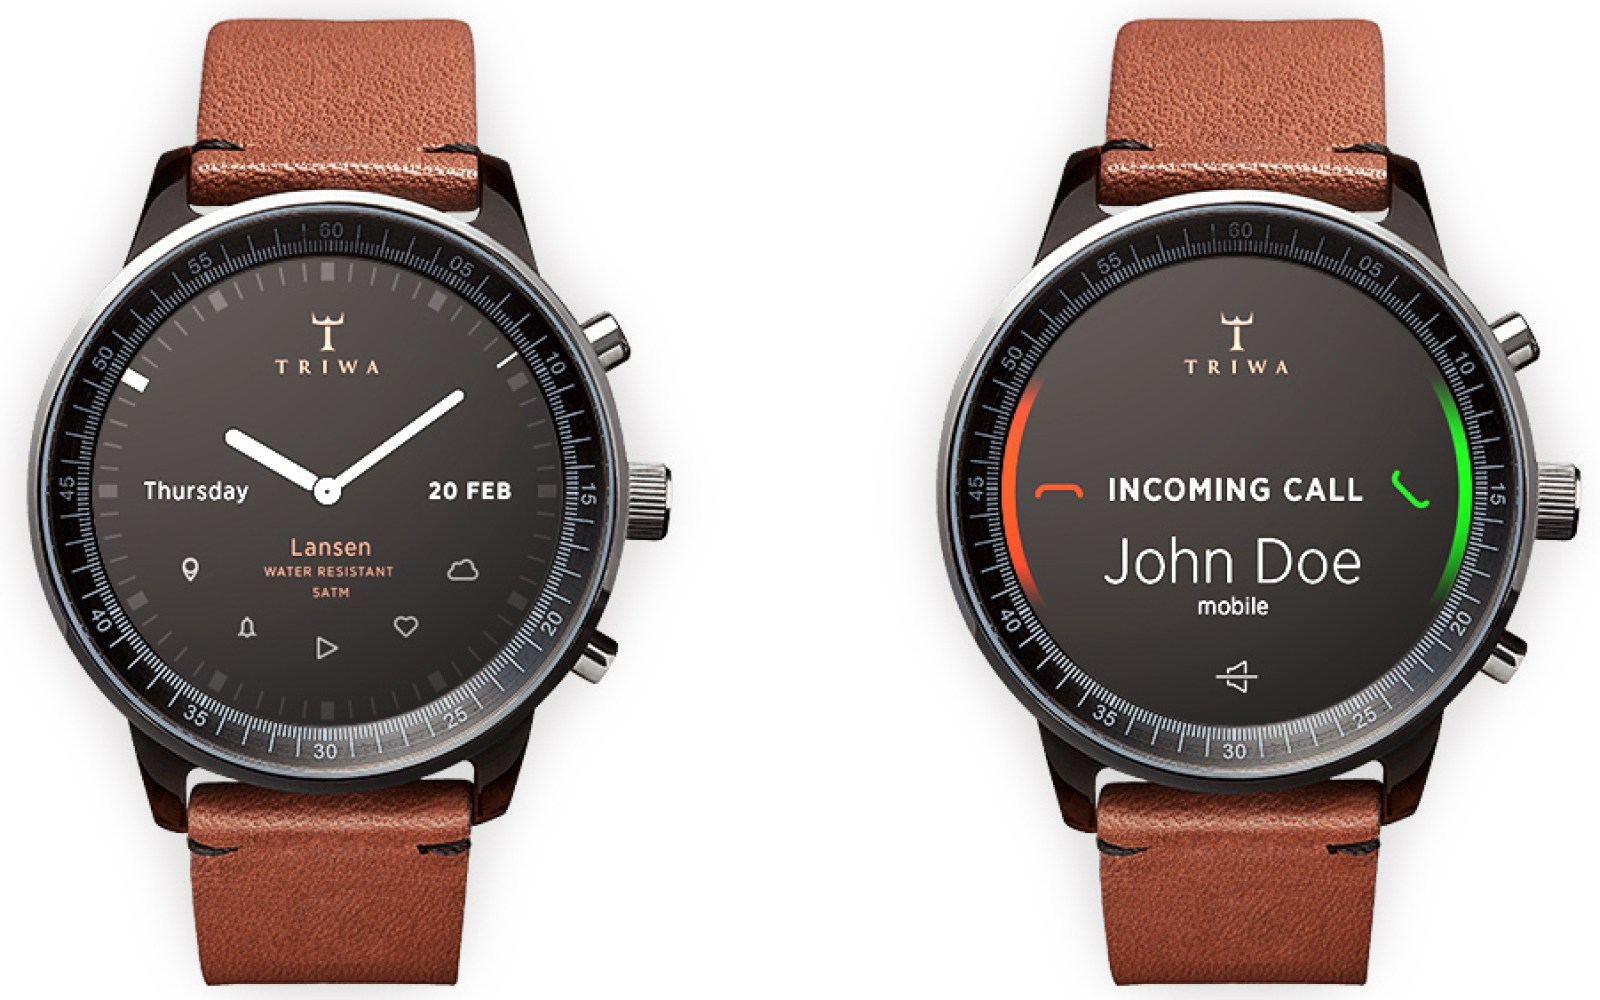 Finally a smartwatch concept that I could actually see myself wearing